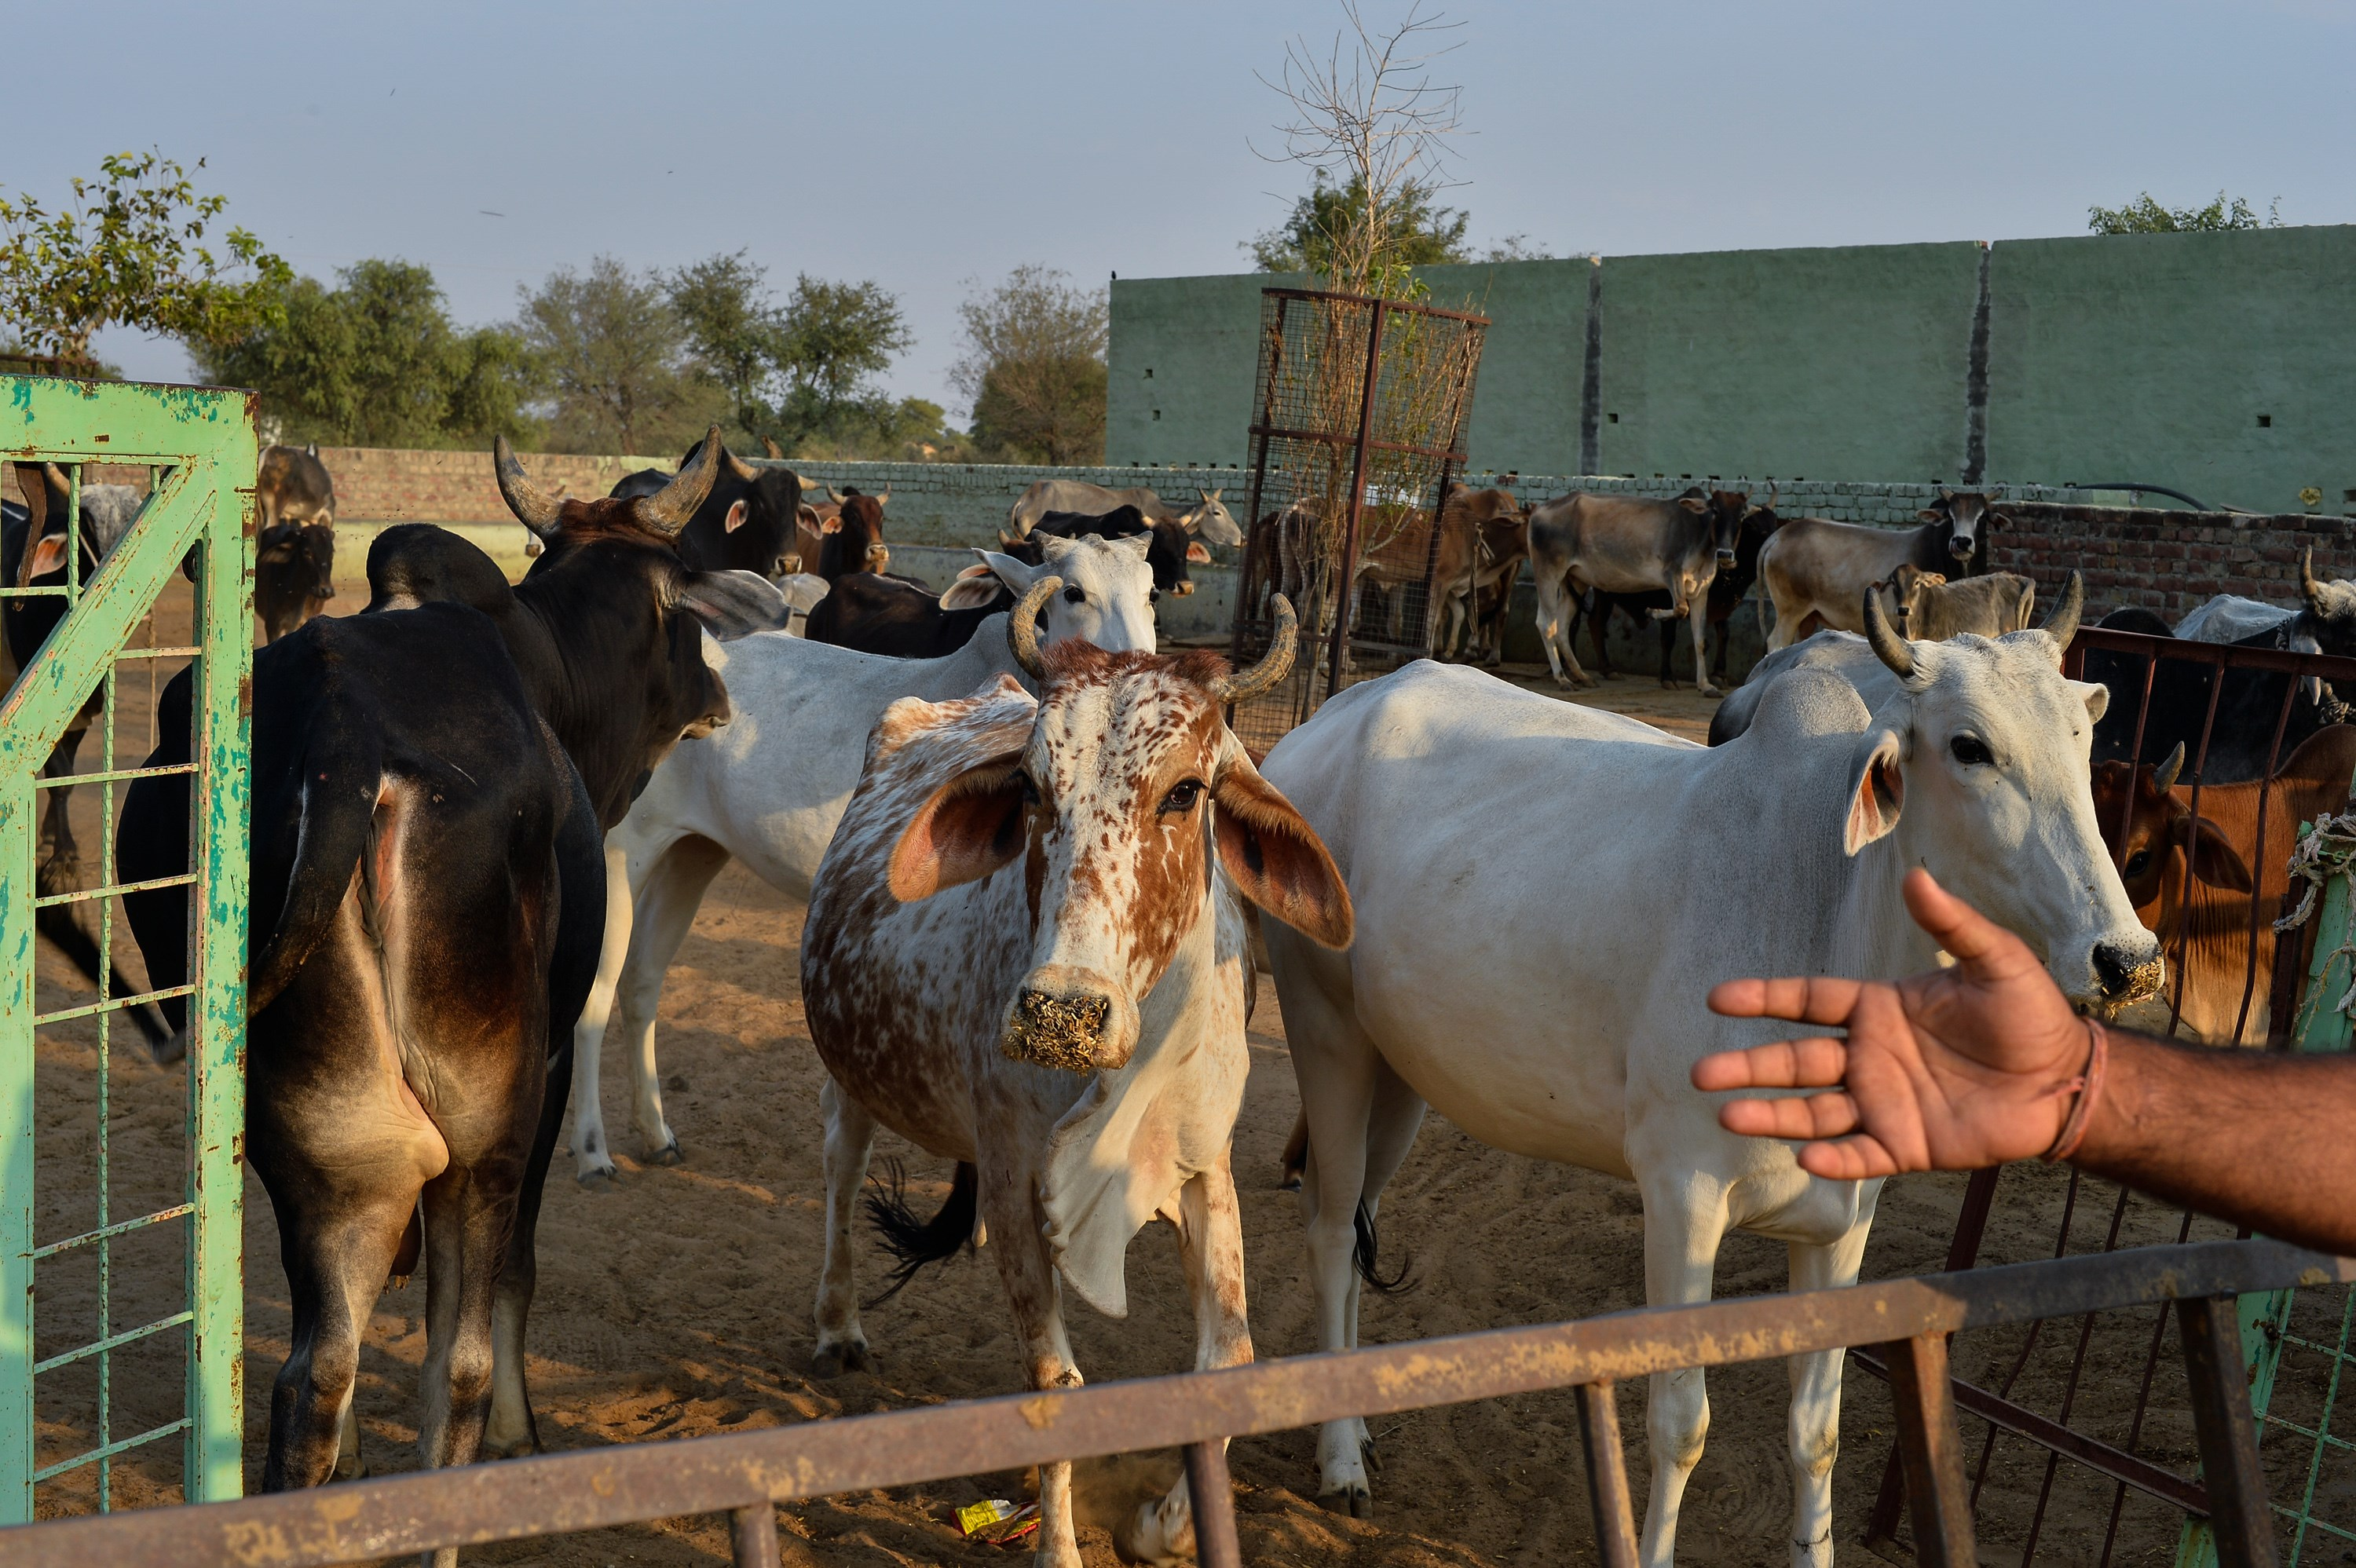 Cows gather at a cow shelter owned by a rustic self-styled leader of cow raiders in Taranagar in the desert state of Rajasthan, on Nov. 5, 2015.